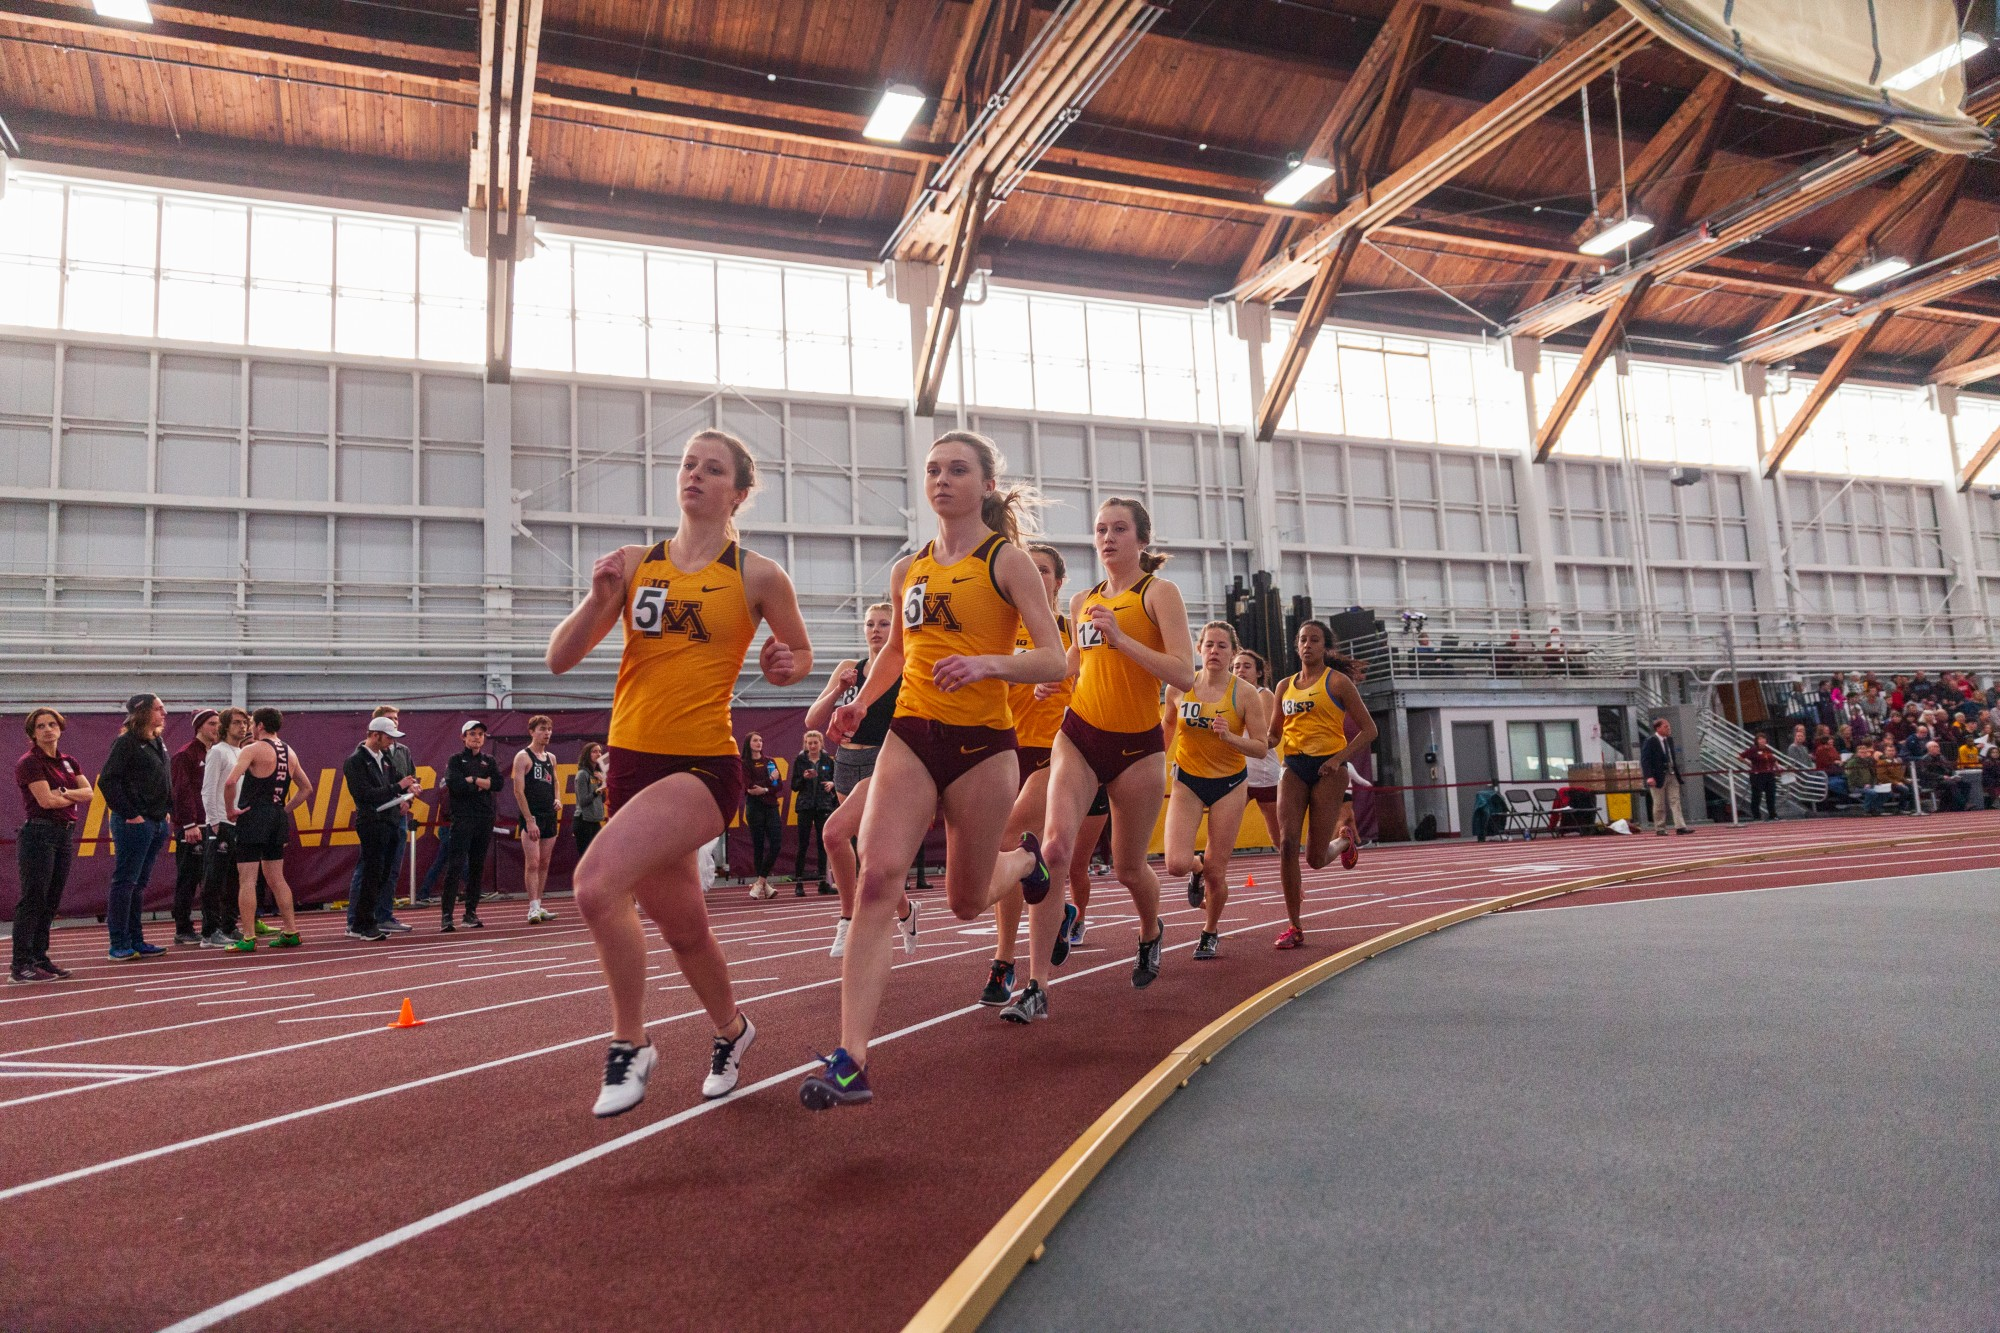 Gophers women lead the field in the mile run at the Minnesota Cold Classic at the University of Minnesota Fieldhouse on Friday, Feb. 21.